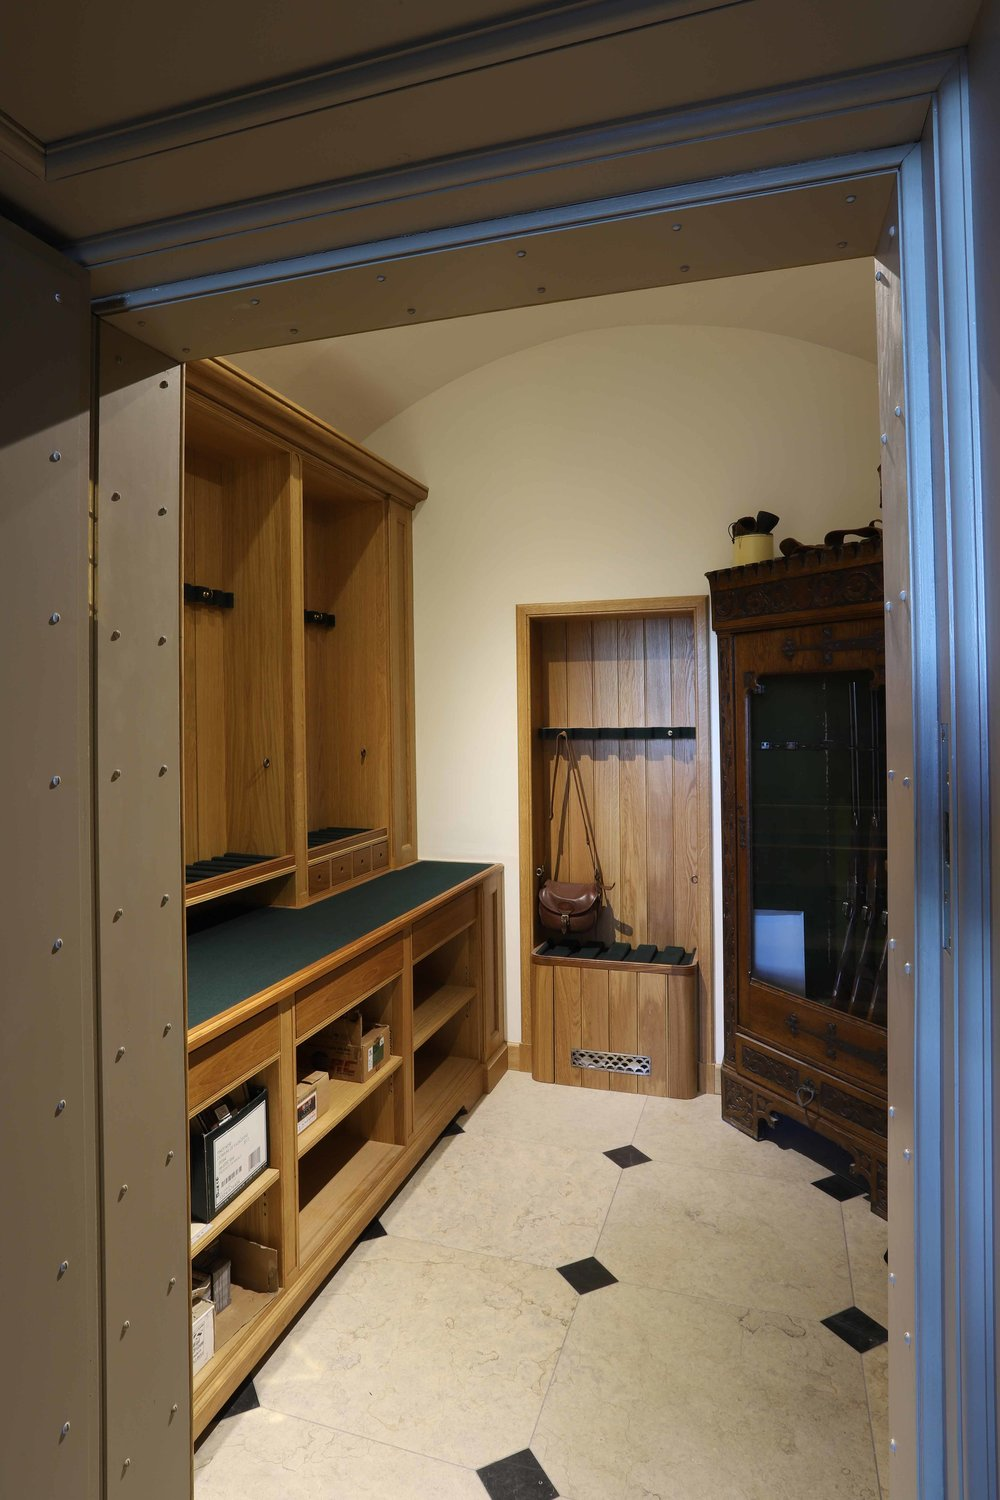 Gunroom furniture in oak, Marchmont House, Greenlaw.